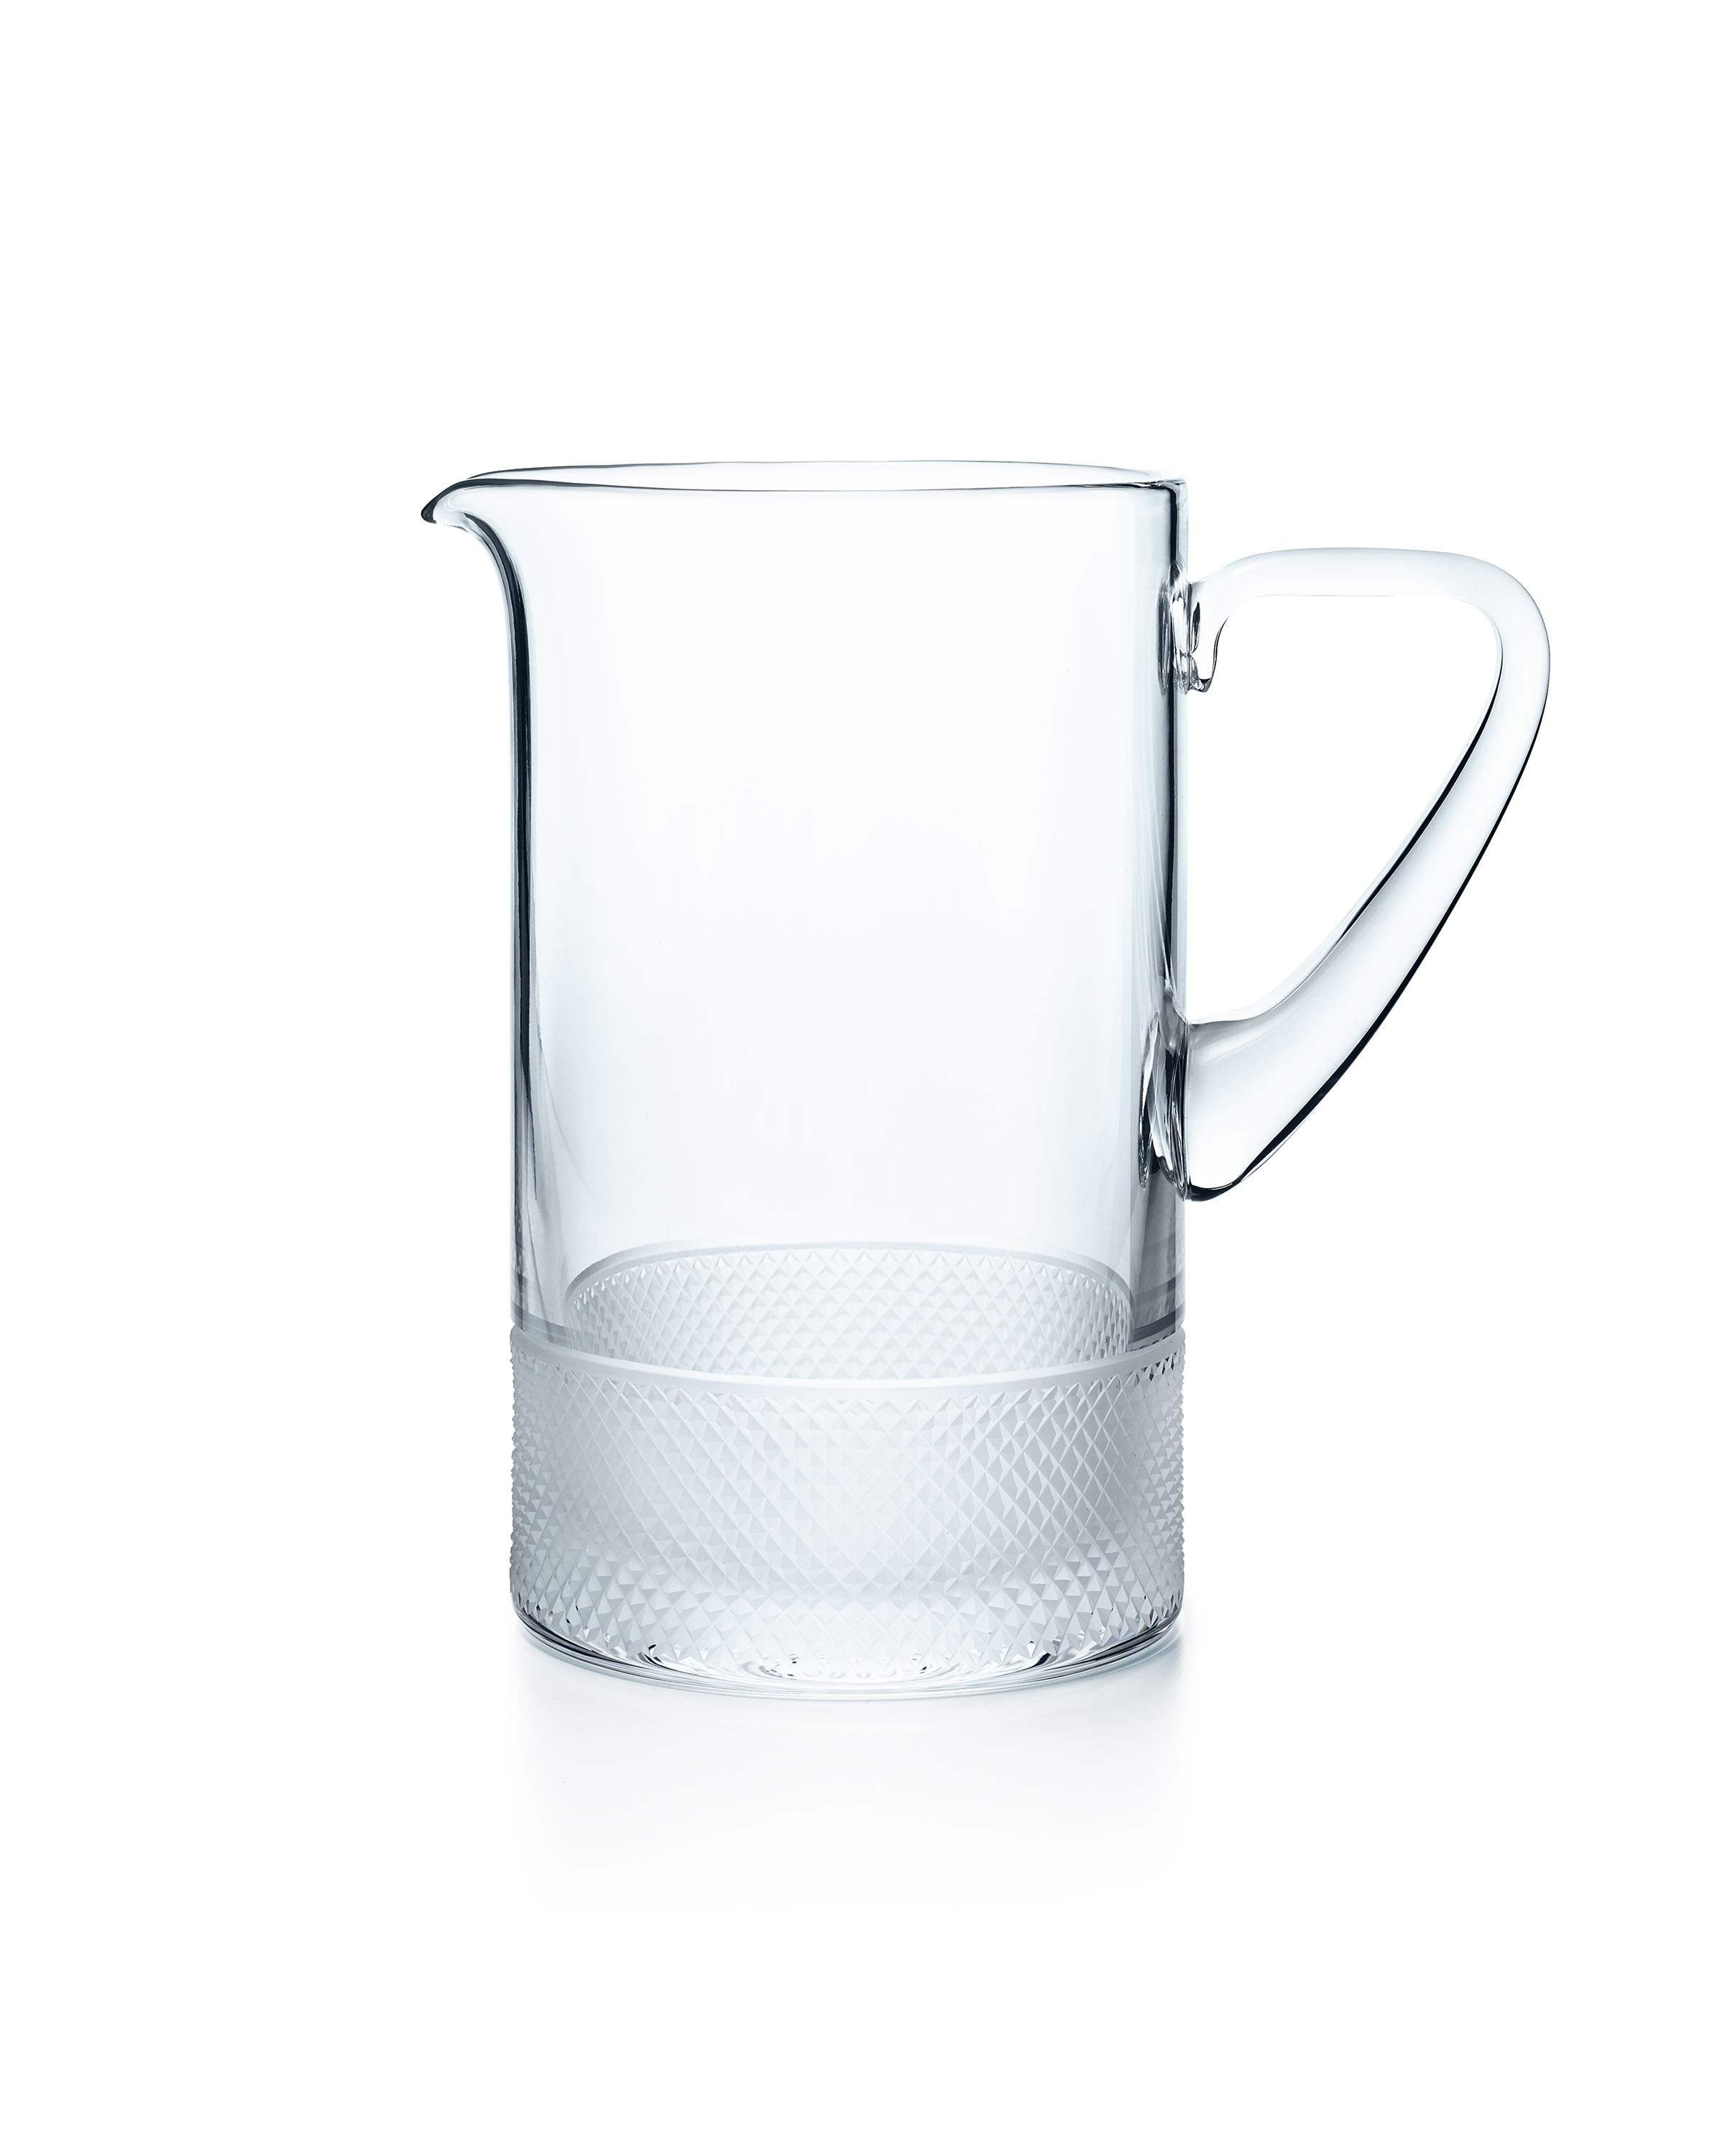 Tiffany & Co. Diamond Point pitcher in lead crystal, $250.00. (Photo Credit: Tiffany & Co.)